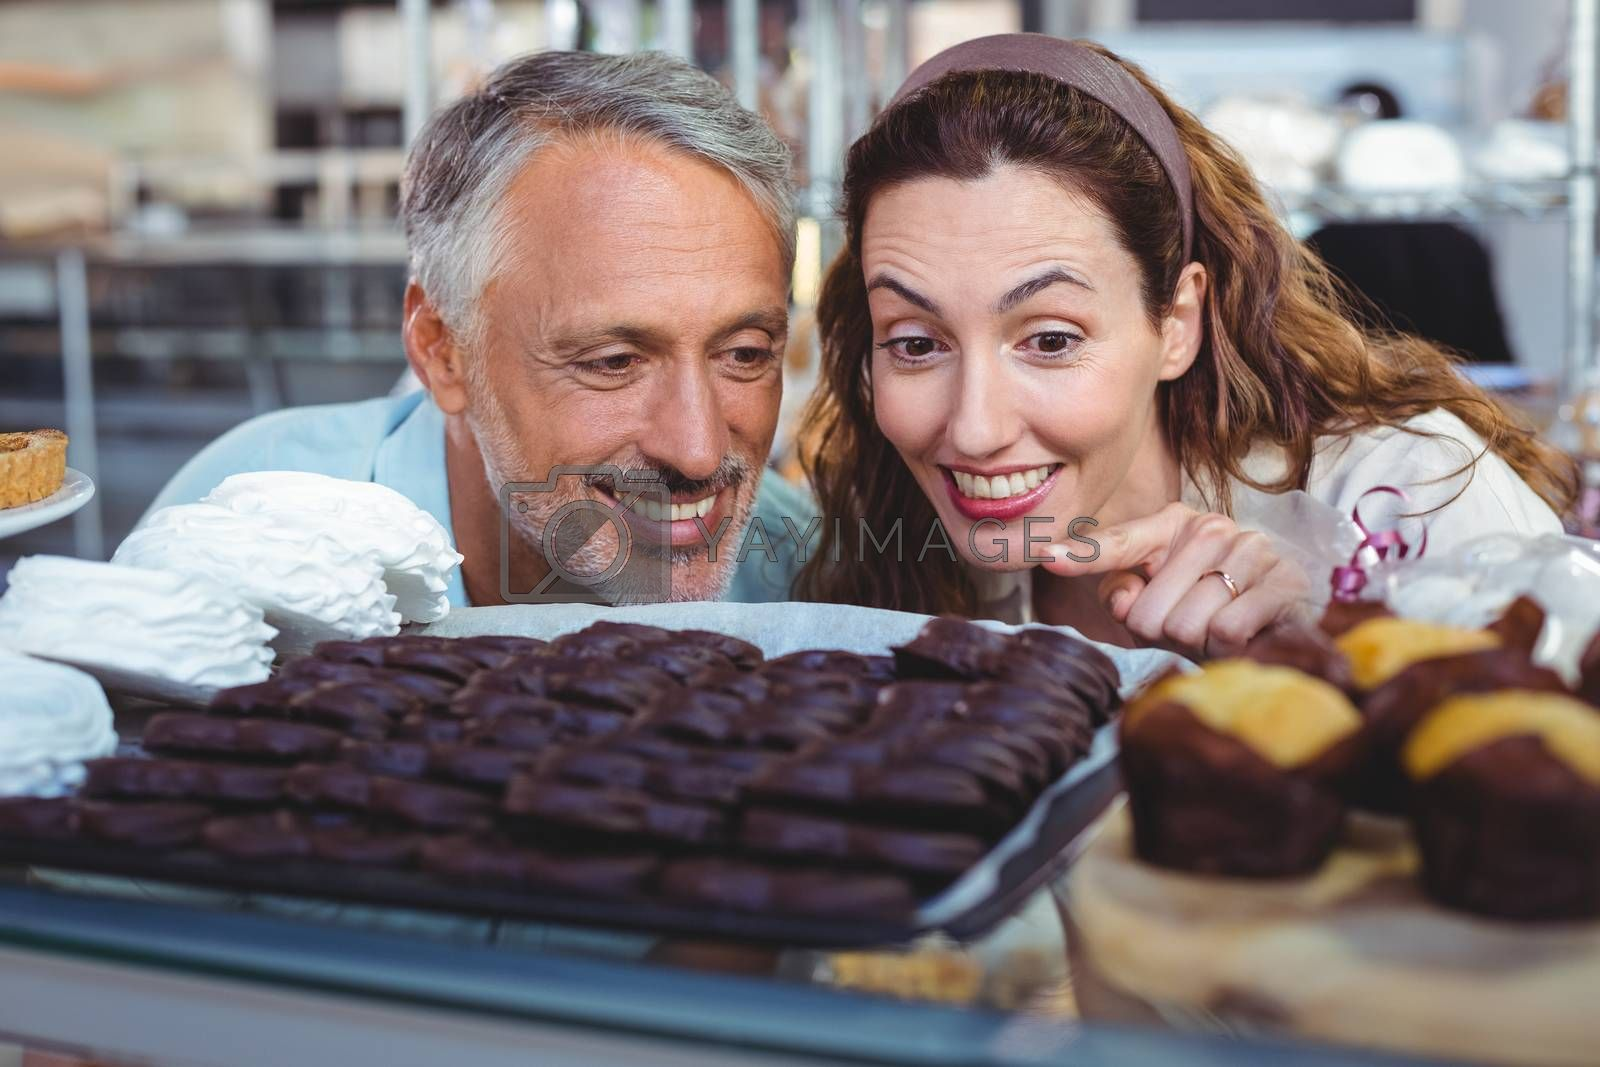 Royalty free image of Happy couple pointing cakes by Wavebreakmedia